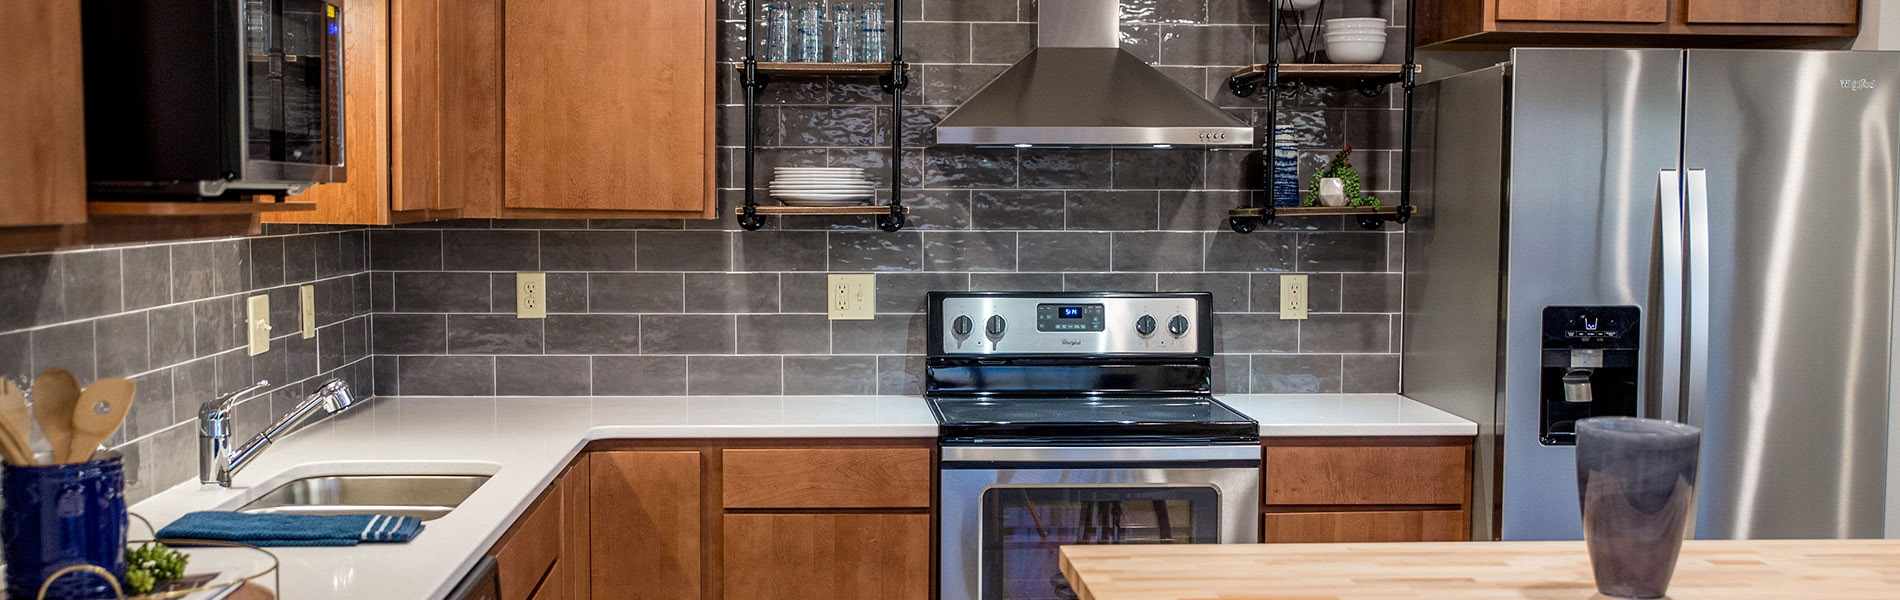 Kitchen in apartment at Sheyenne Plaza - EPIC Companies